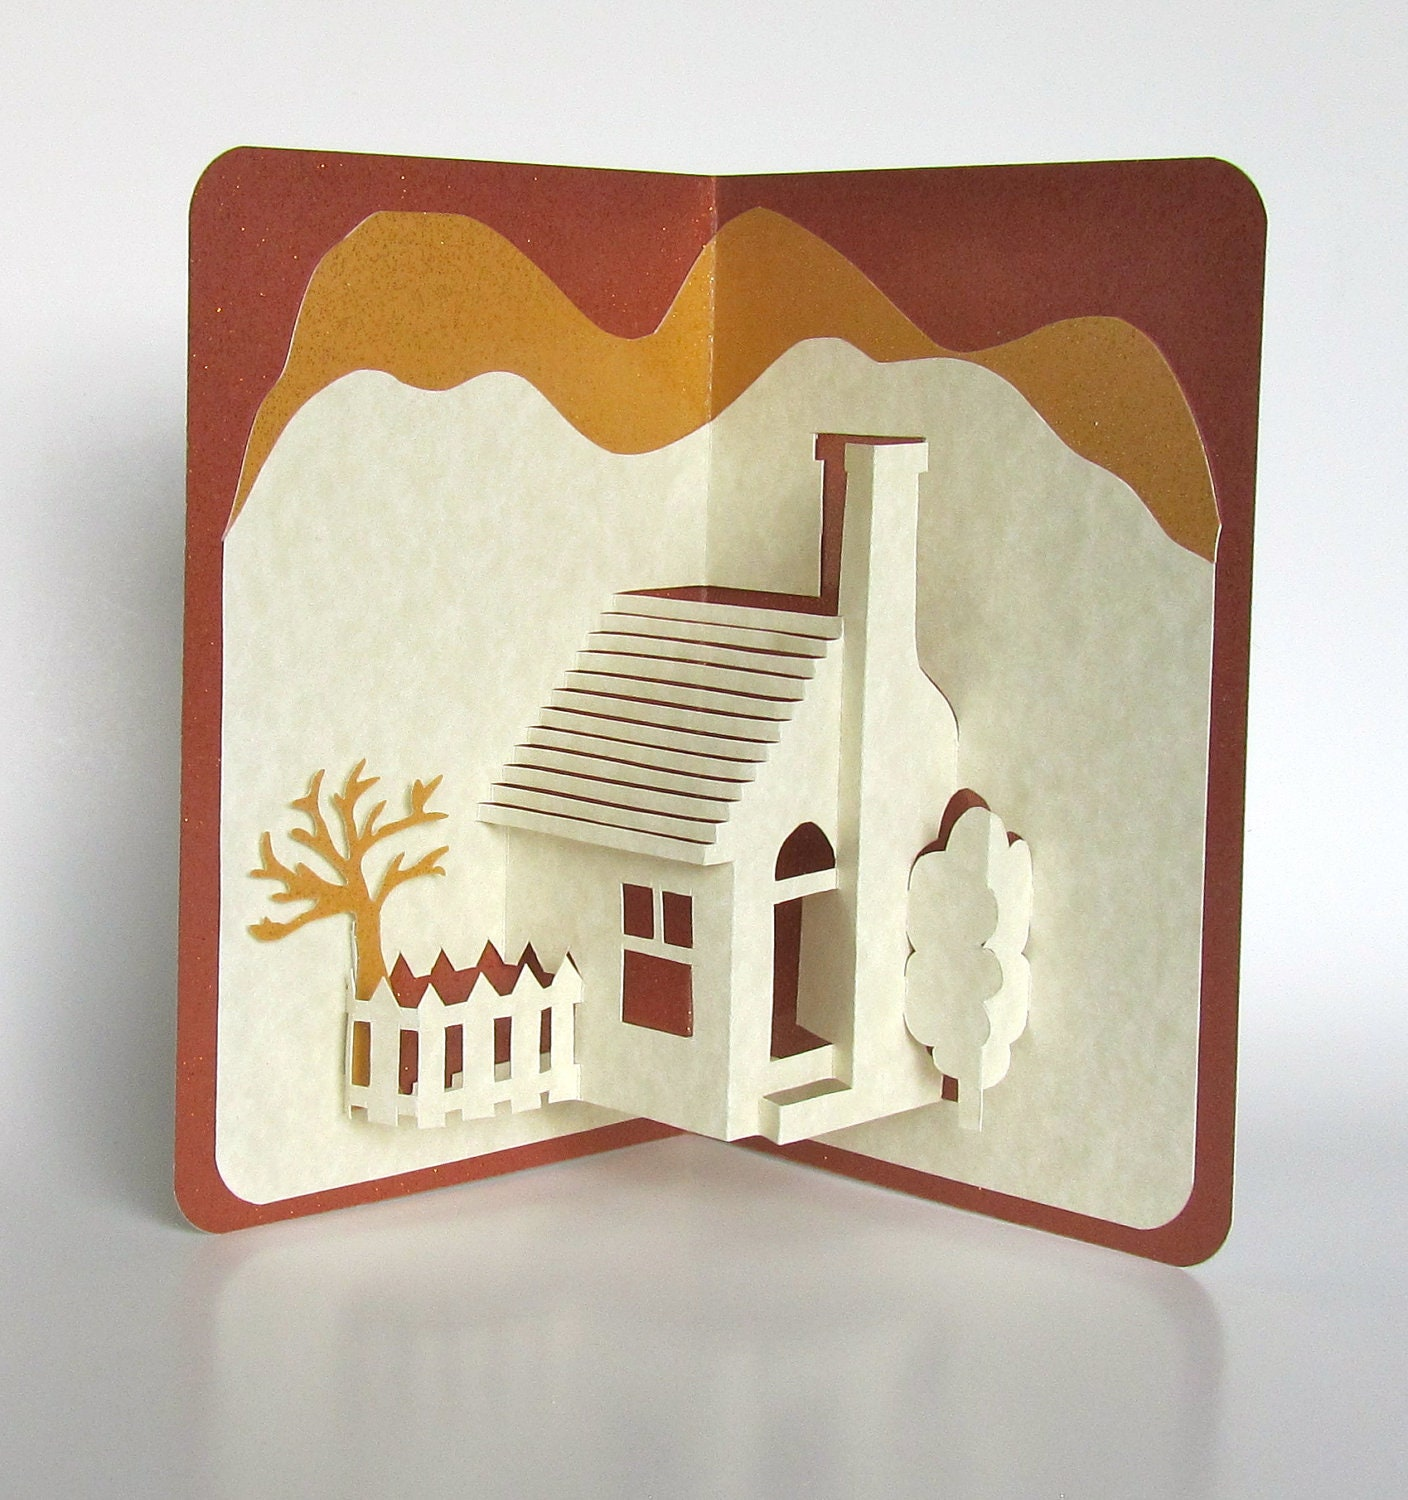 Home pop up 3d card home d cor origamic architecture handmade for 3d christmas cards to make at home